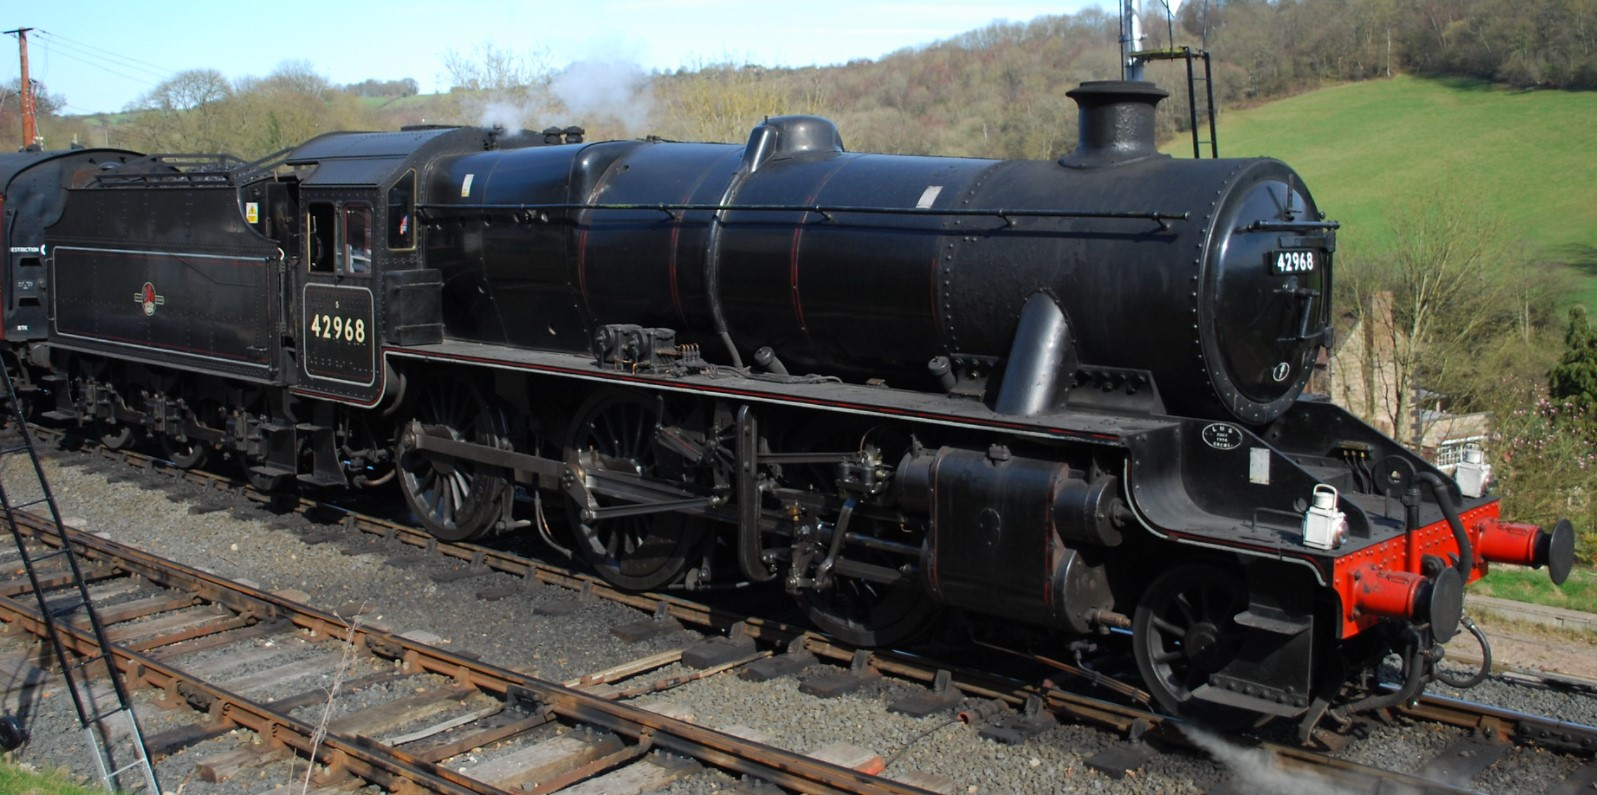 42968 at the Severn Valley Railway in March 2012. ©Hugh Llewelyn